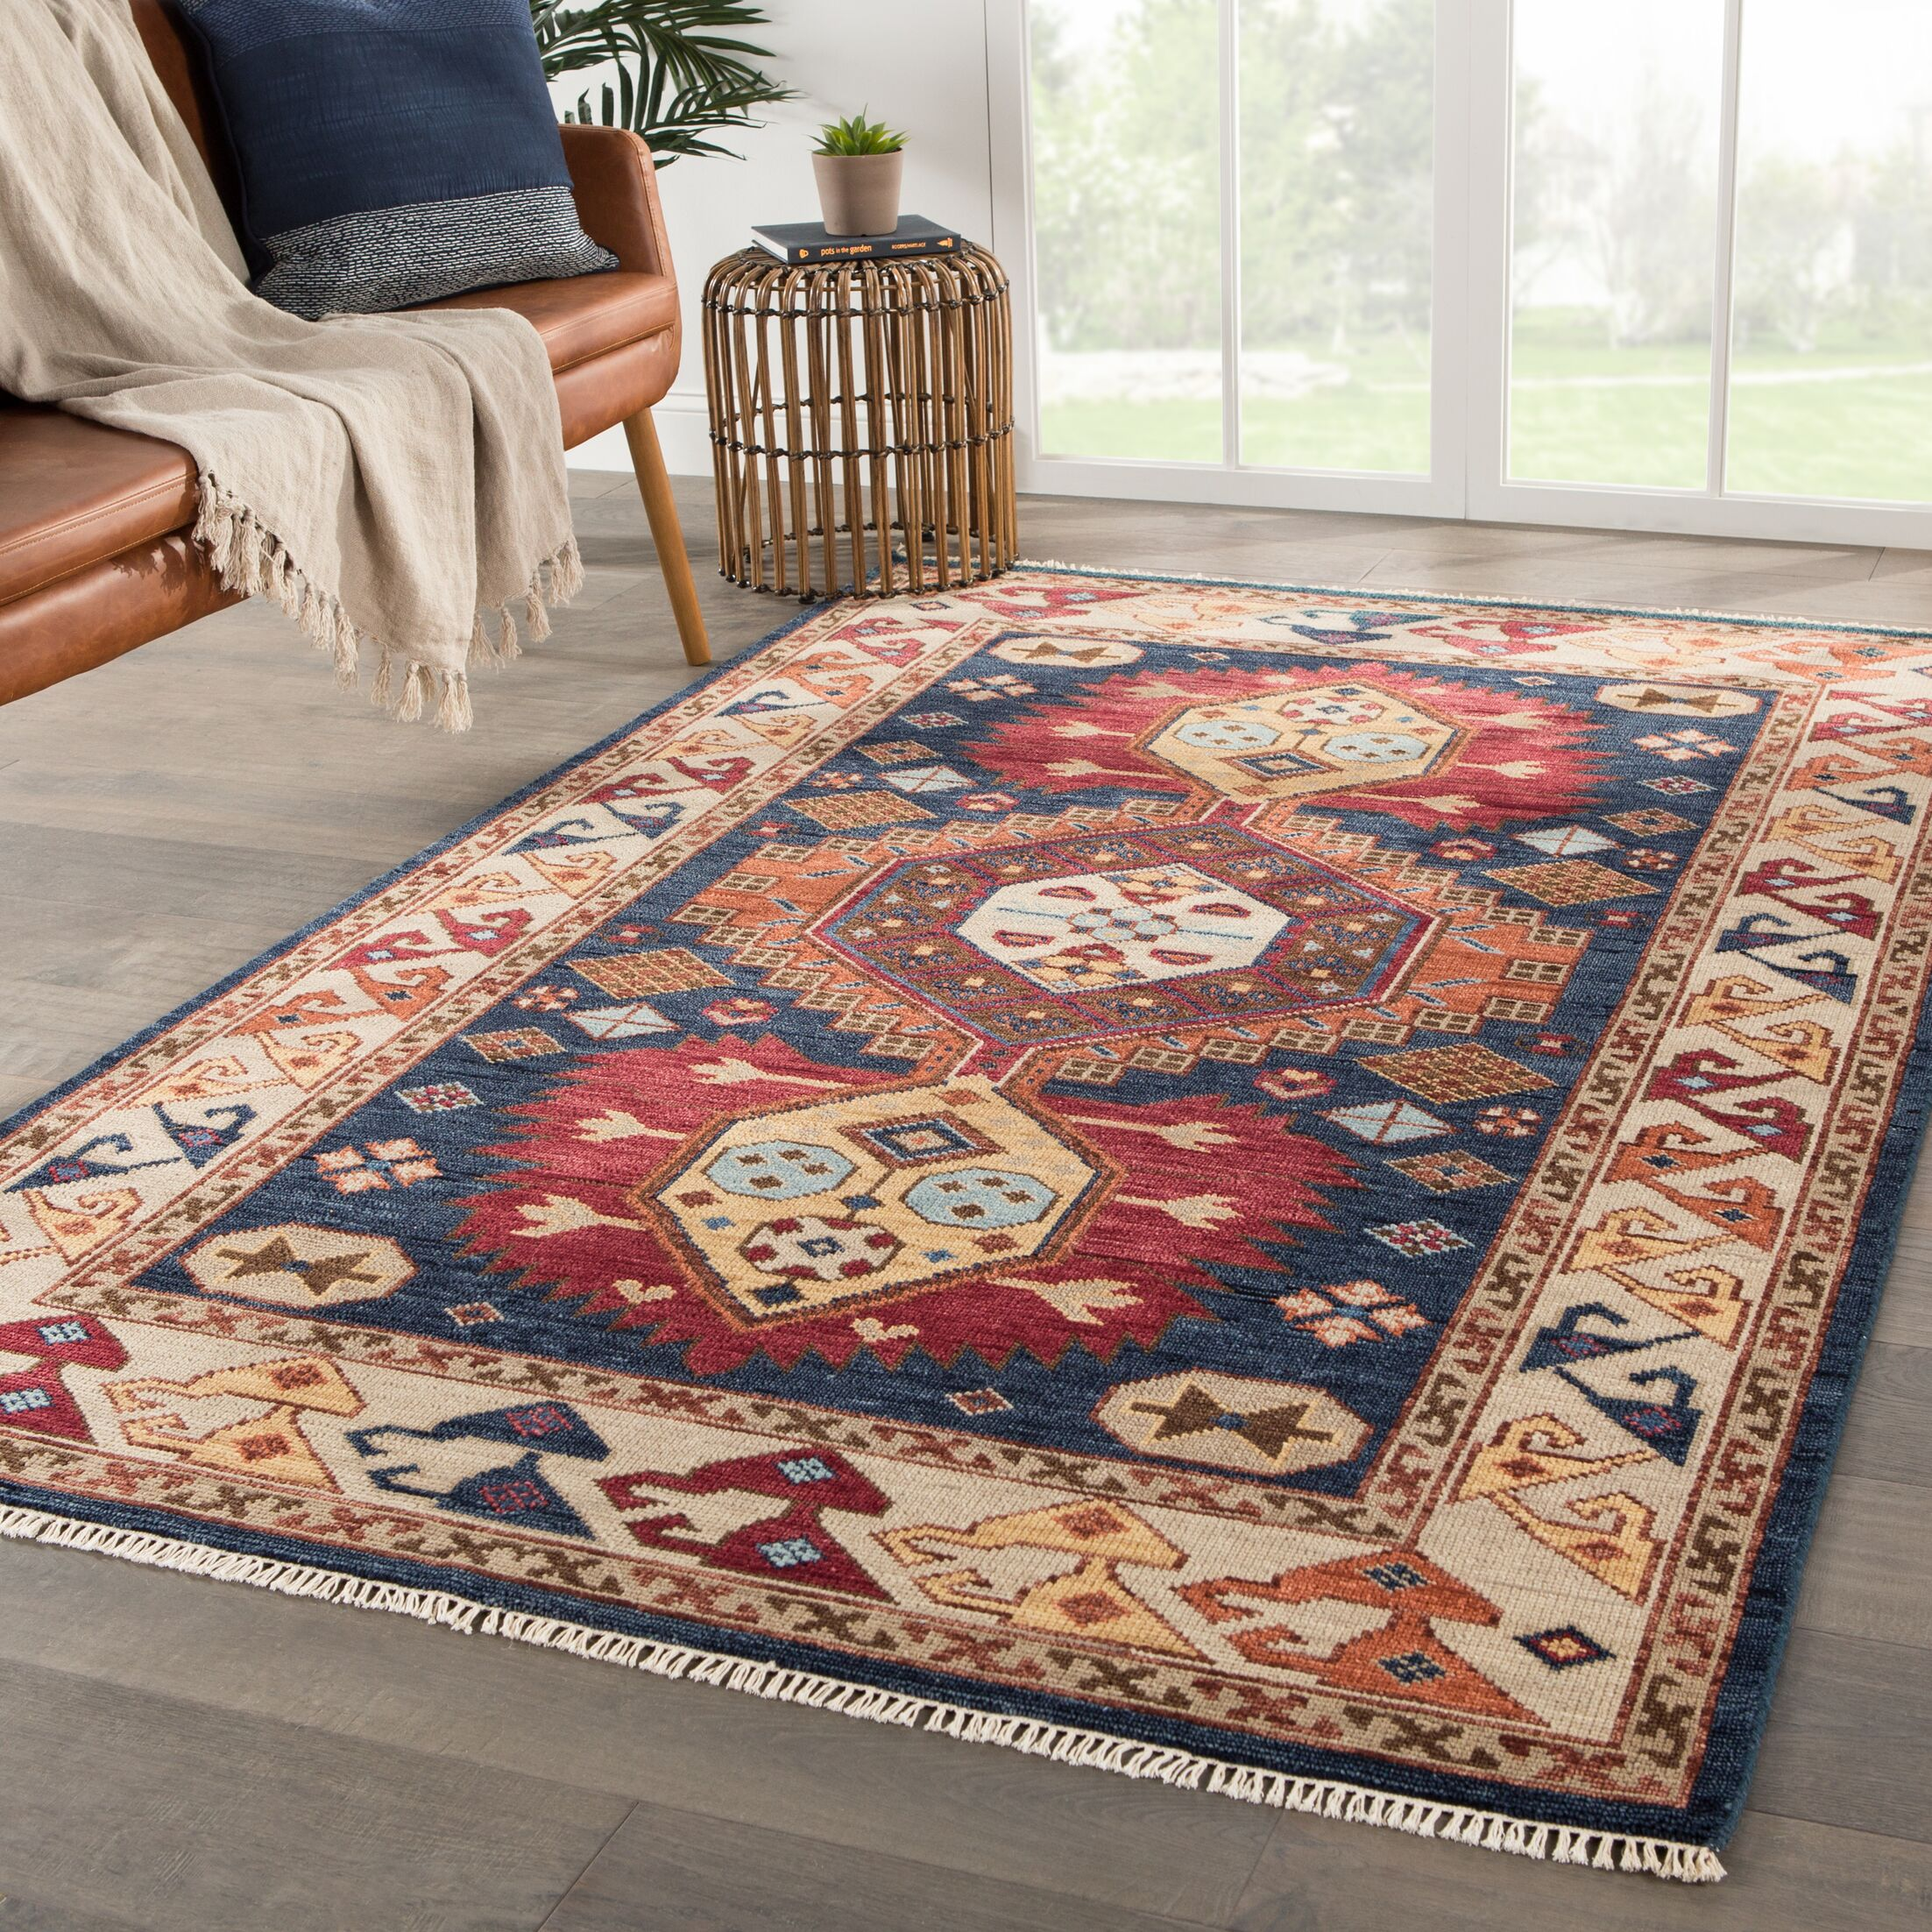 Twyla Medallion Hand-Knotted Wool Blue/Red Area Rug Rug Size: Rectangle 5'6